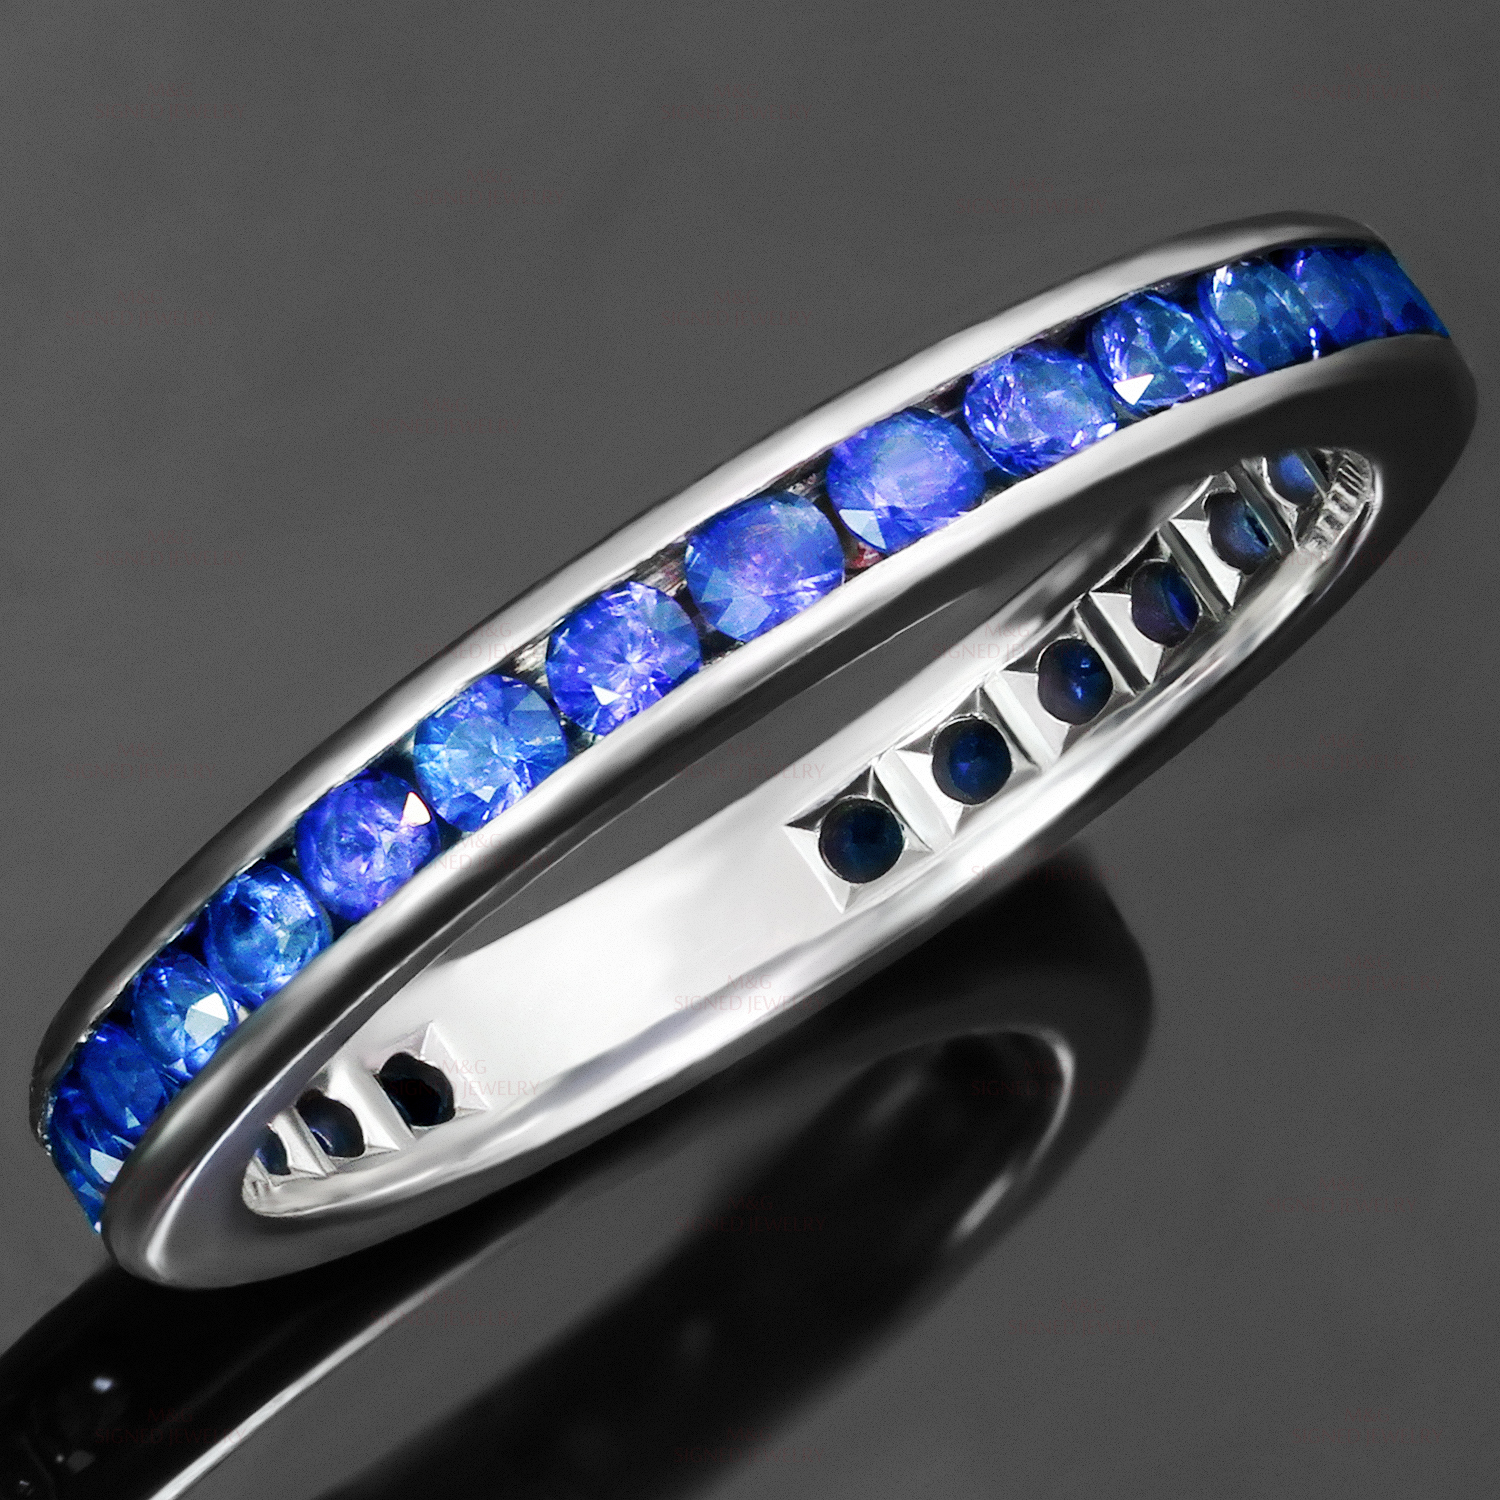 TIFFANY & CO. Blue Sapphire Platinum Band Ring